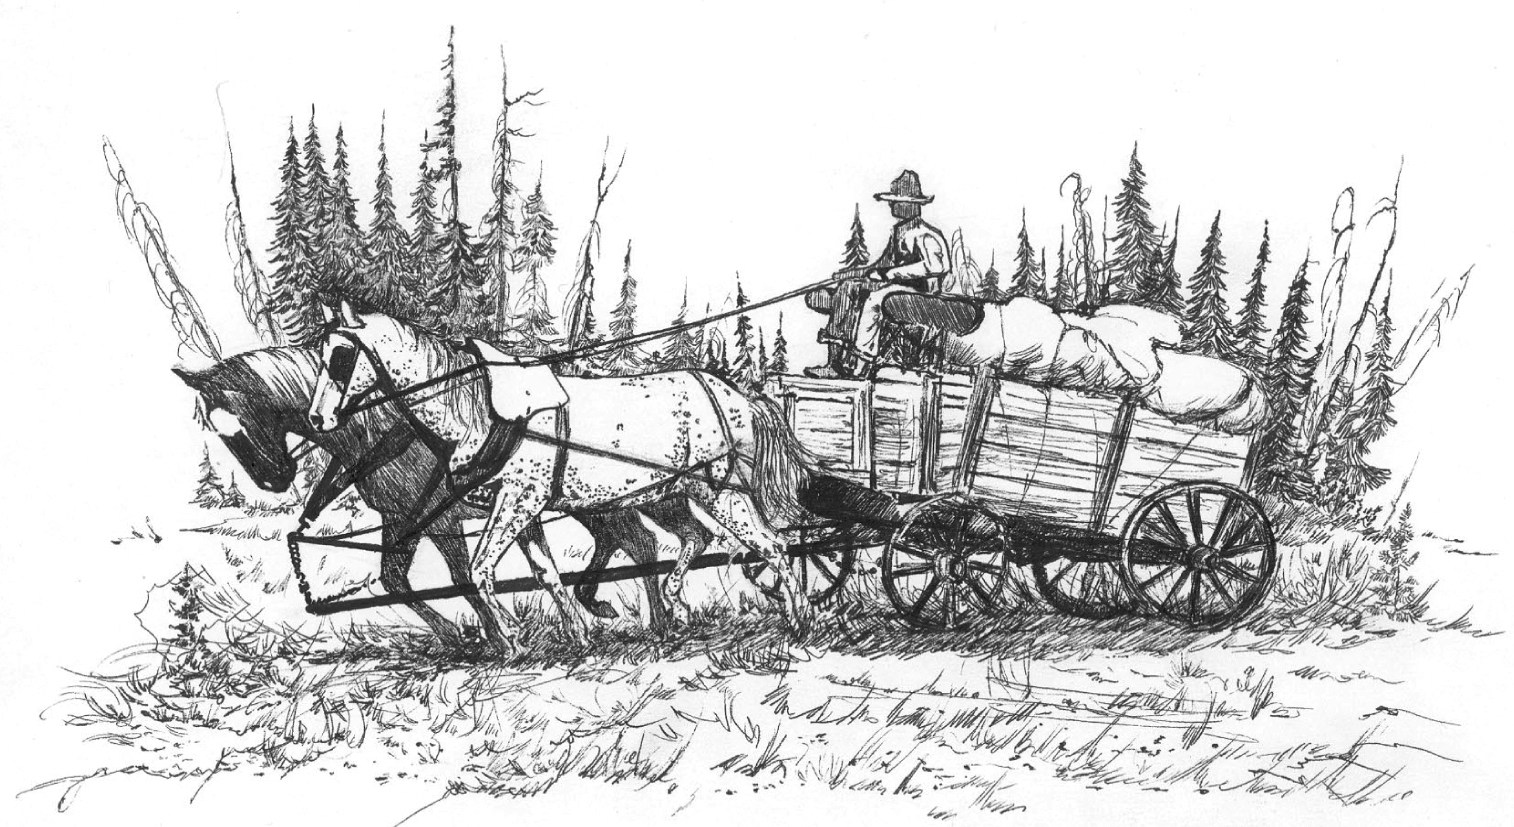 Retracing history: Driving tour one of the activities slated for weekend's Elk City Wagon Road Days